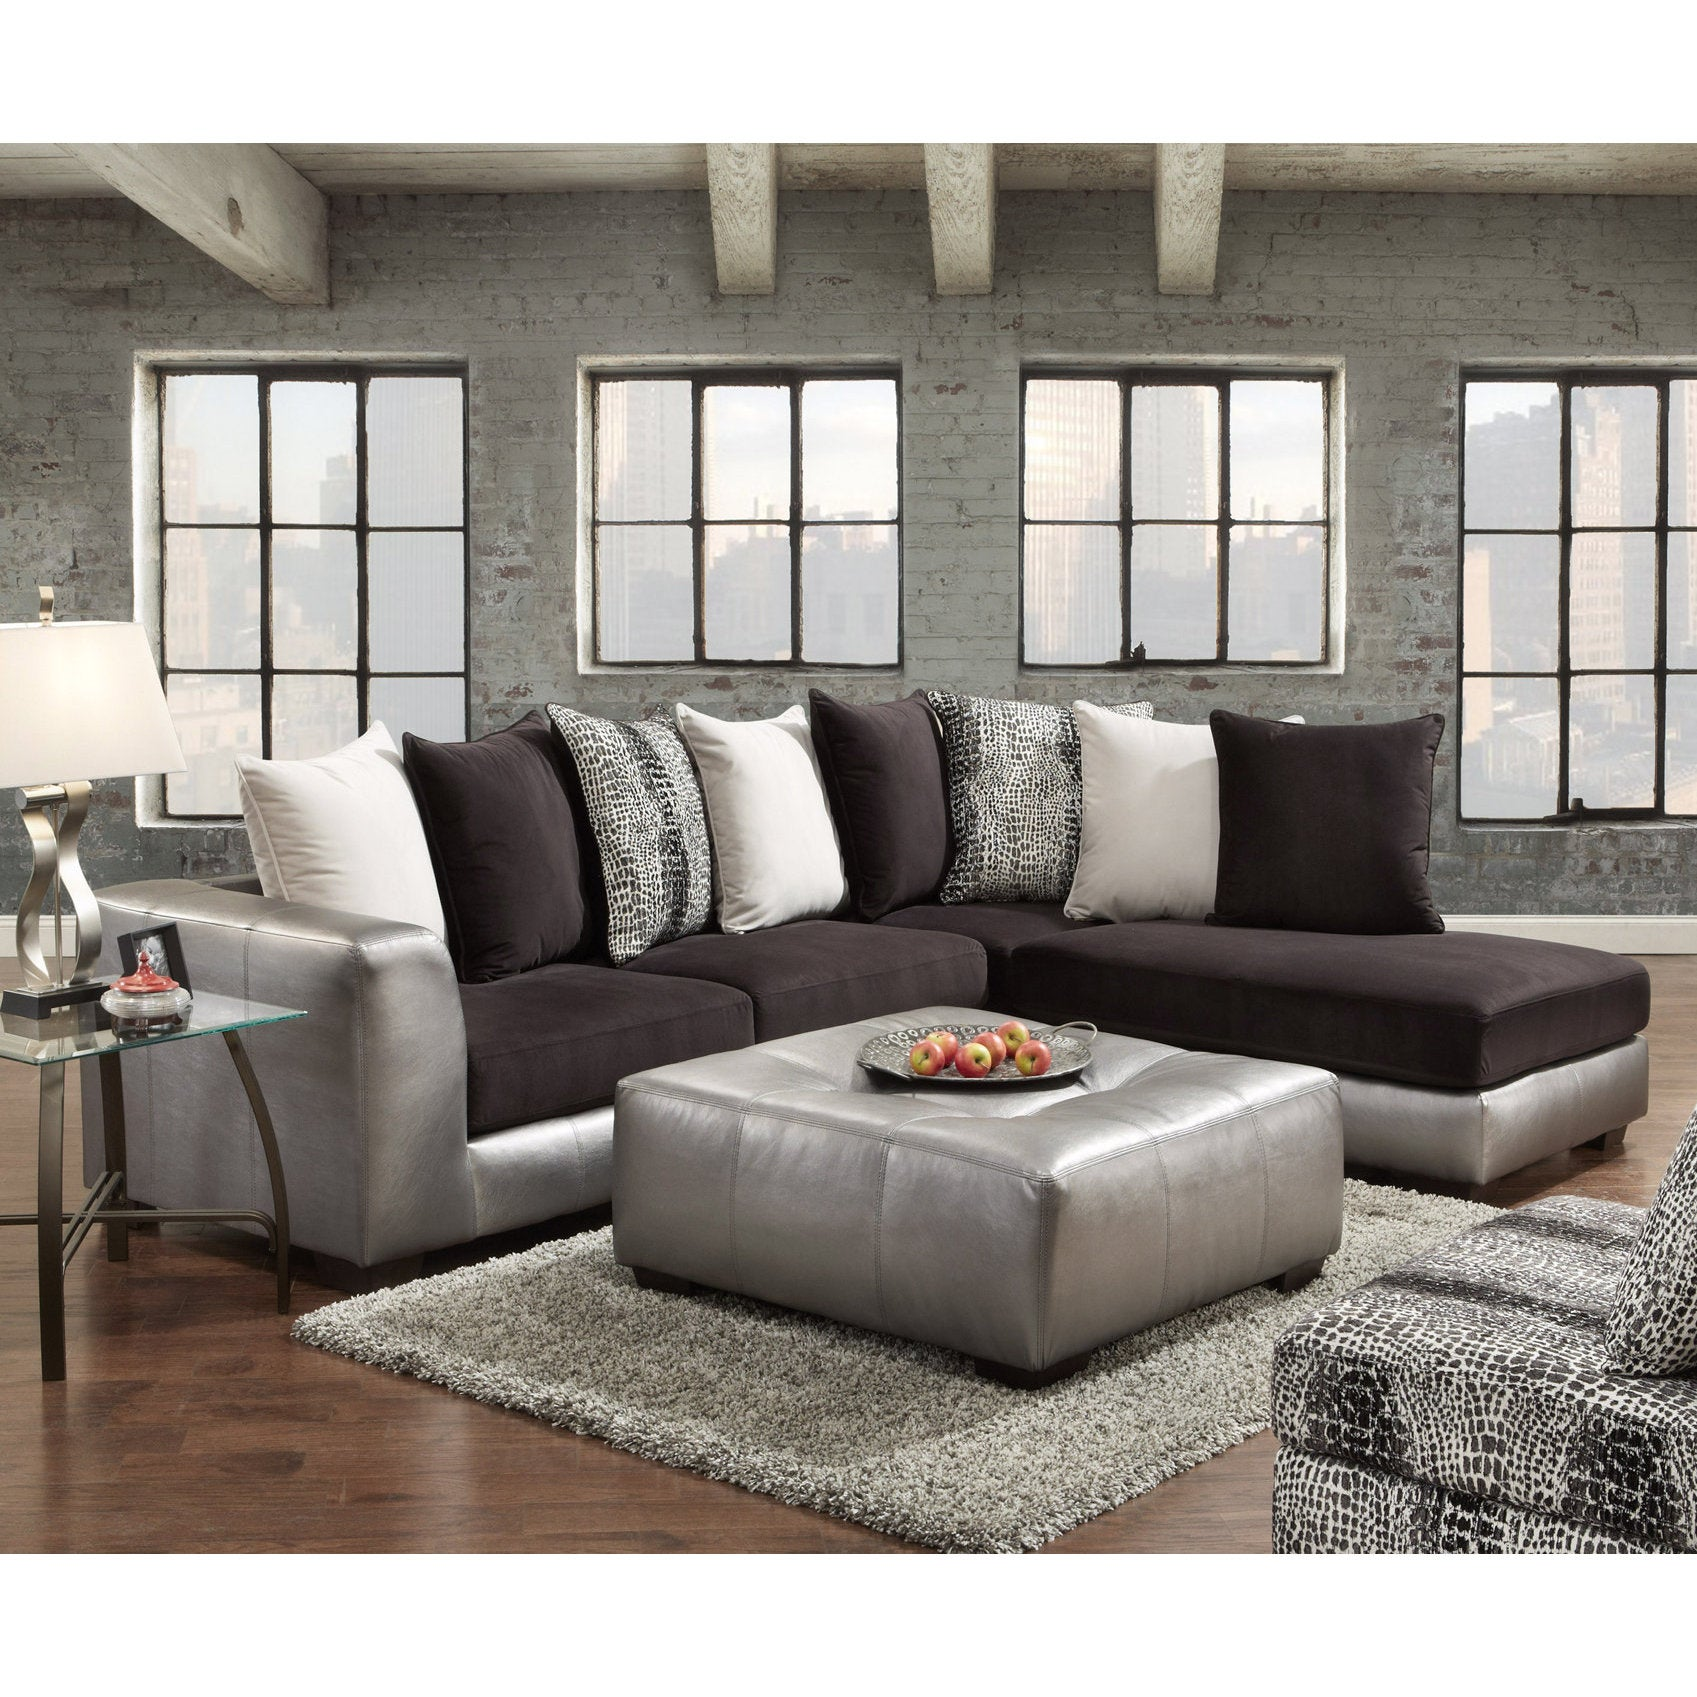 industries furniture couch item grey upholstery raflvseat slate sectional br rolled simmons with products number sofa transitional